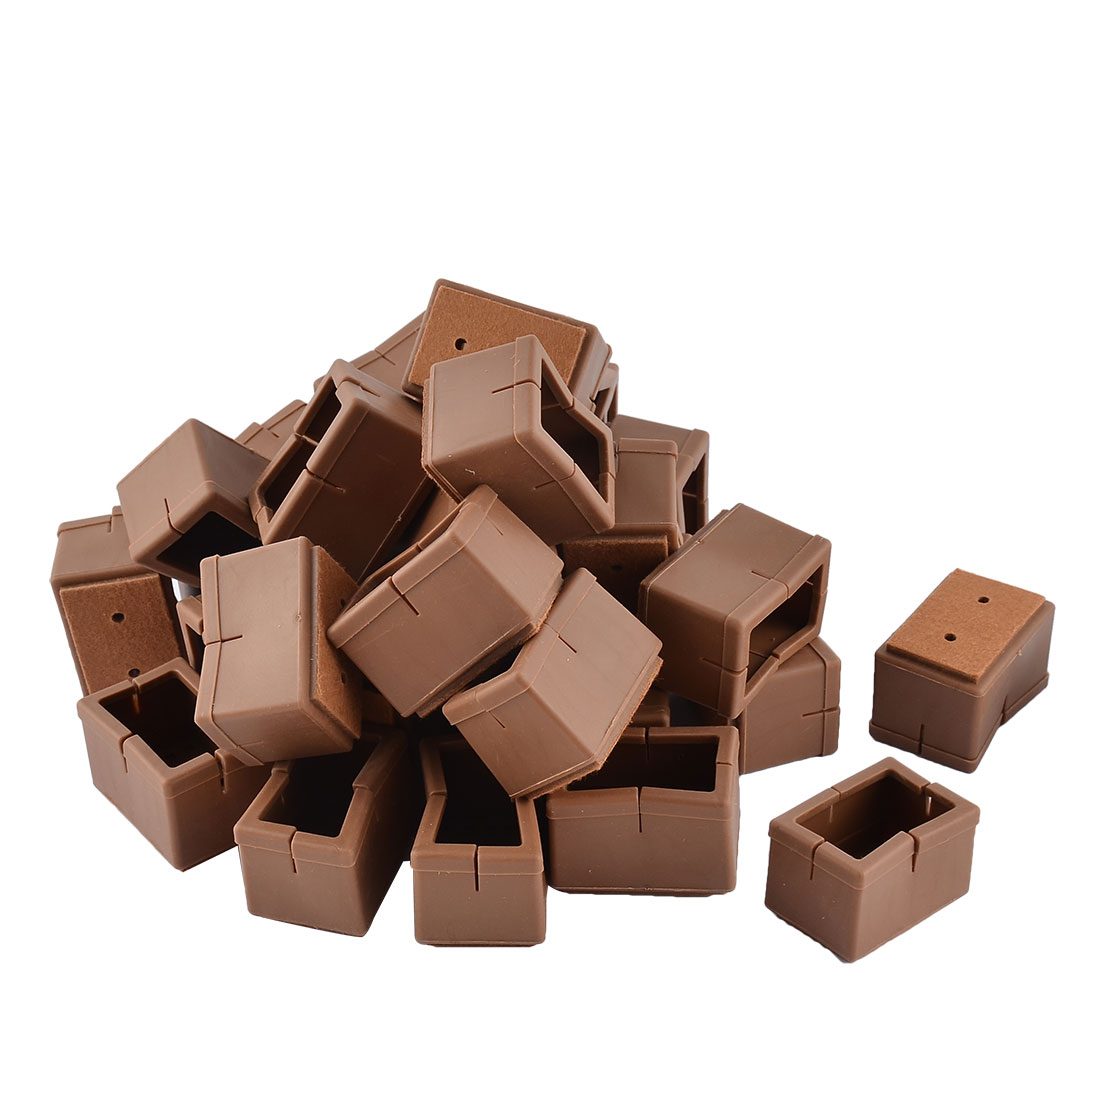 Silicone Rectangular Bottom Floor Protection Table Chair Leg Cover Coffee Color 4.8 x 3.3 x 3.3cm 32pcs